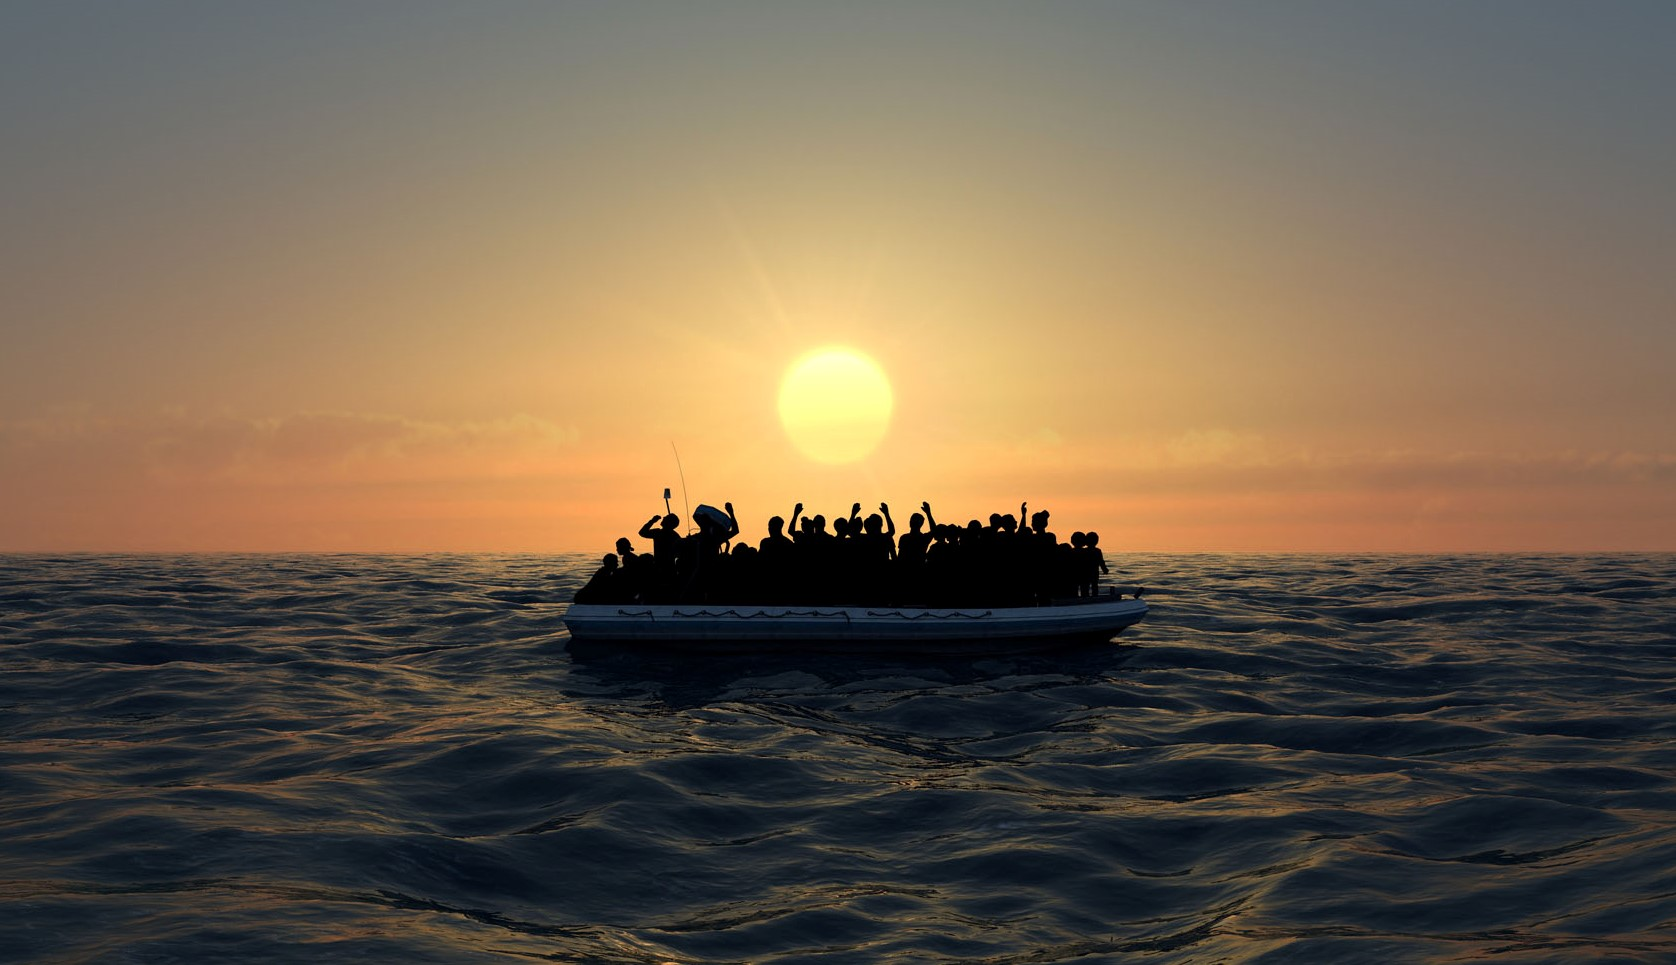 Refugees on a big rubber boat in the middle of the sea that require help